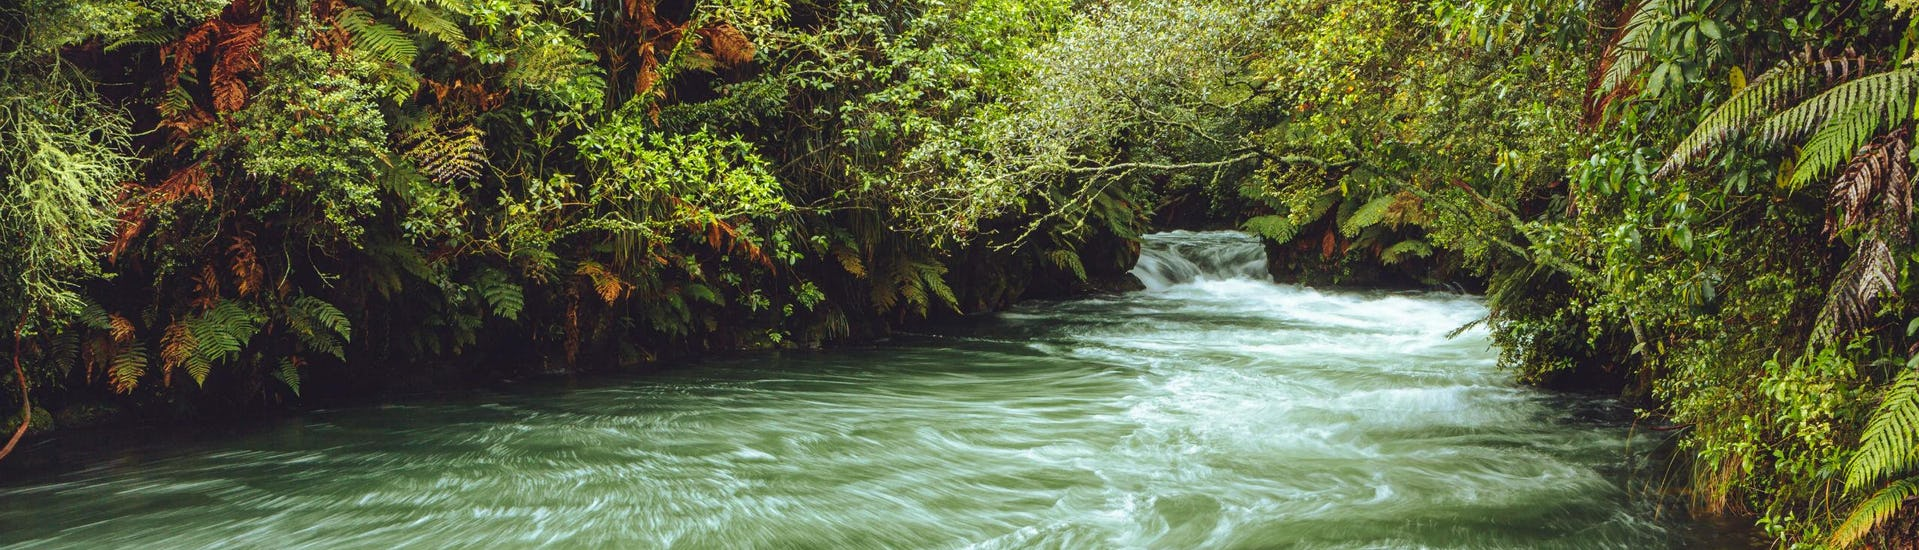 An image of the rousing Kaituna River in the region of Rotorua, a popular hotspot for white water rafting.